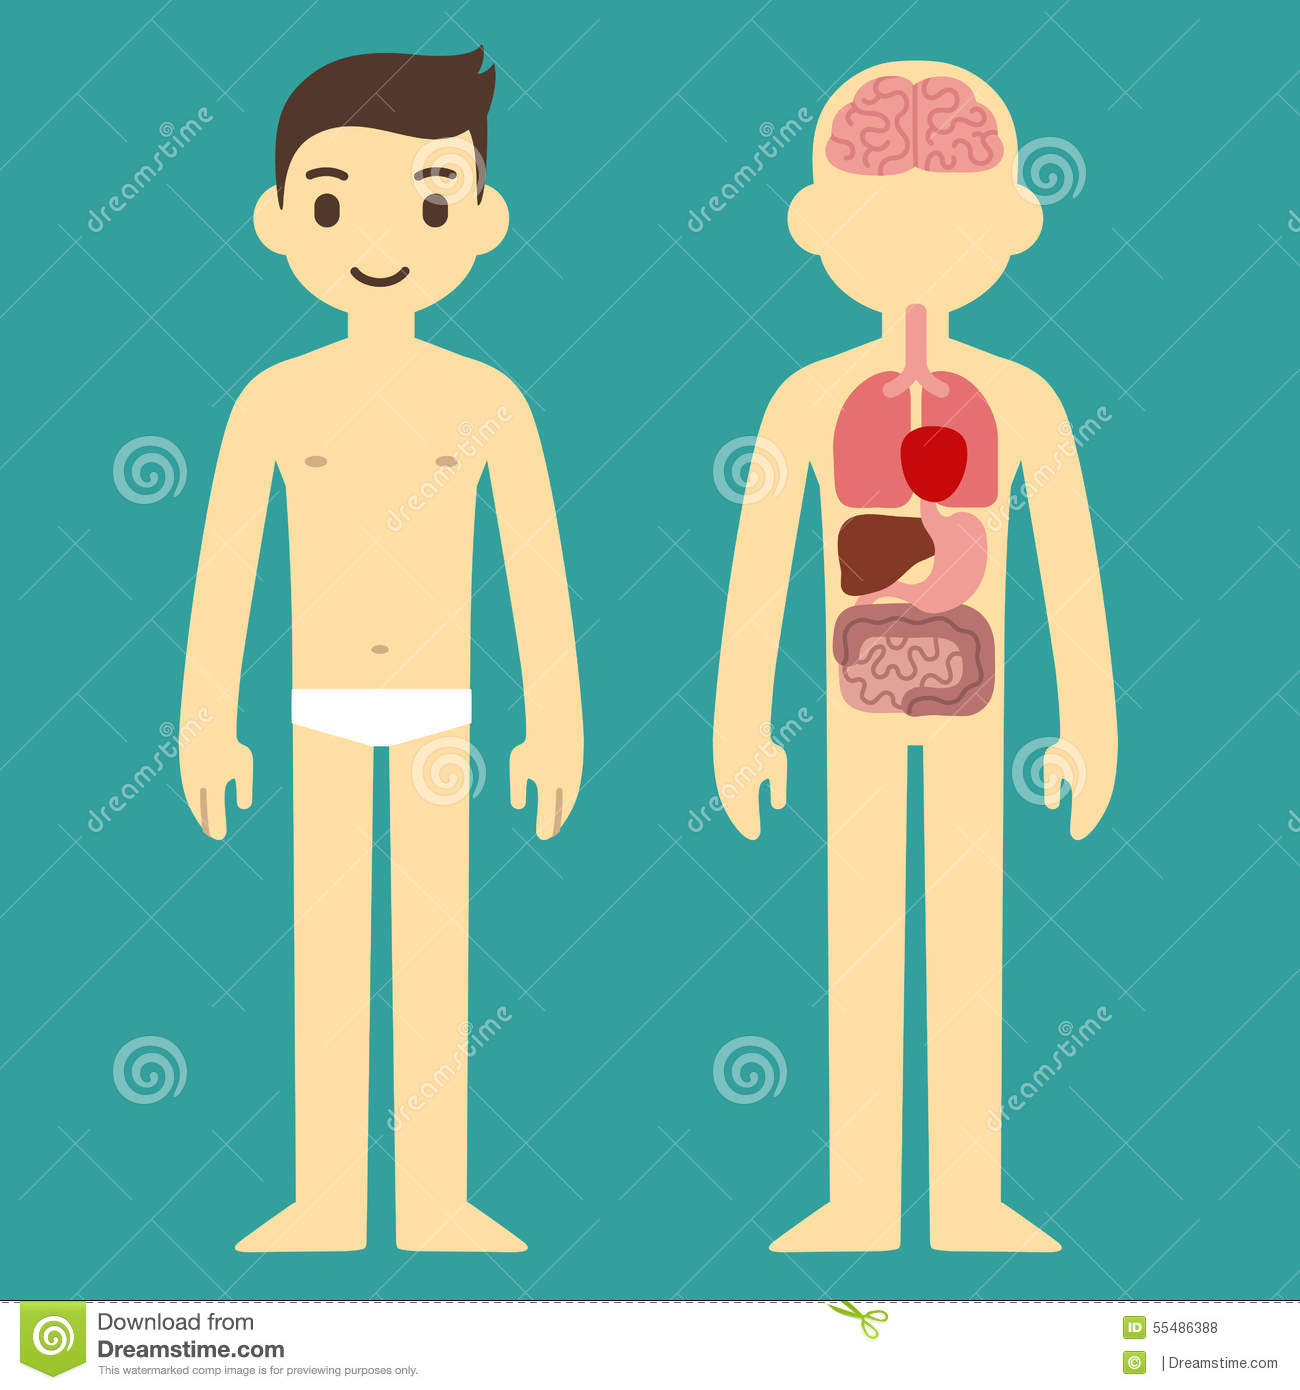 Male organ chart stock illustration. Illustration of illustration ...